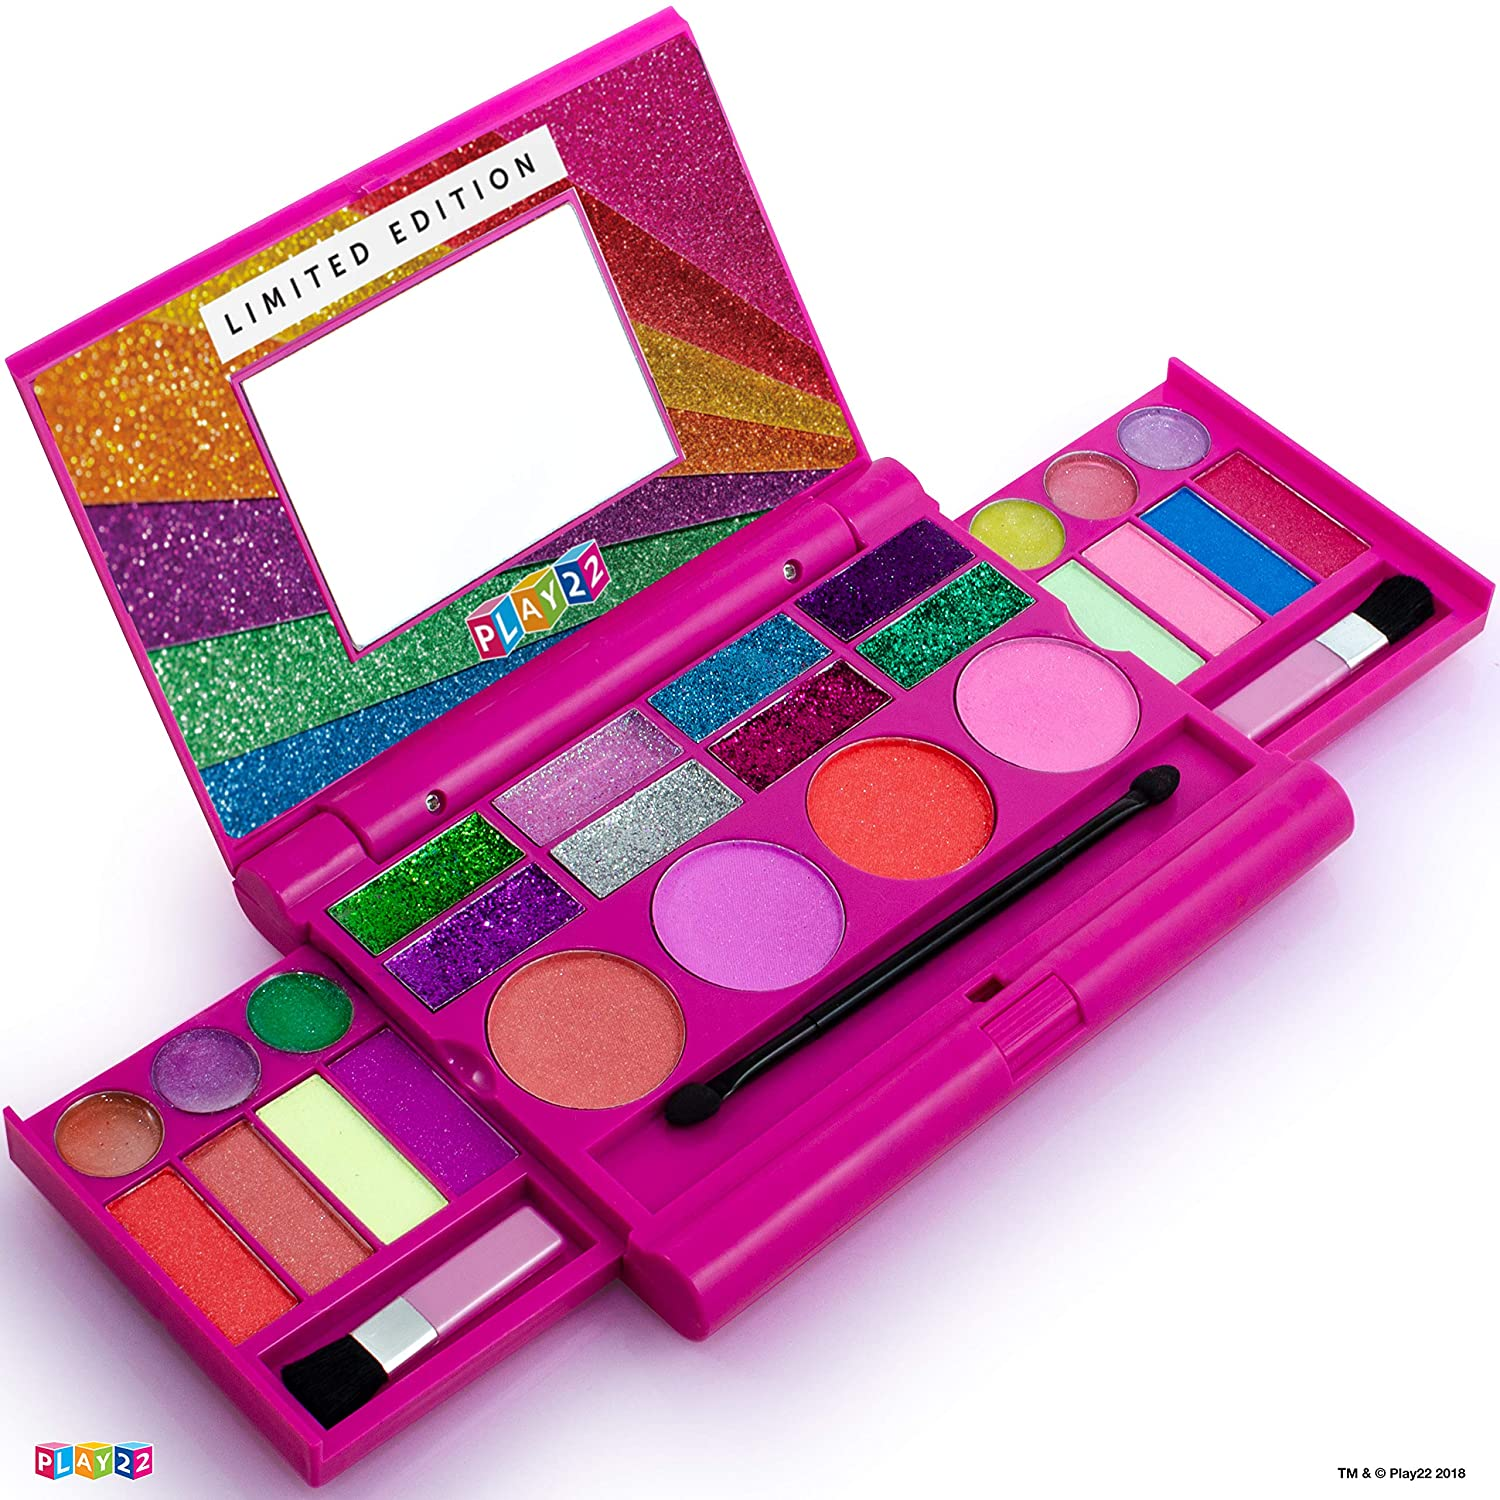 Kids Makeup Palette for Girl – Real Washable Kids Makeup - My First Princess Make Up Set Include 4 Blushes, 8 Eyeshadows, 6 Lip Glosses, 8 Glitter Glaze, Mirror, Brushes, Eyeshadow Wand - Best Gift Play22